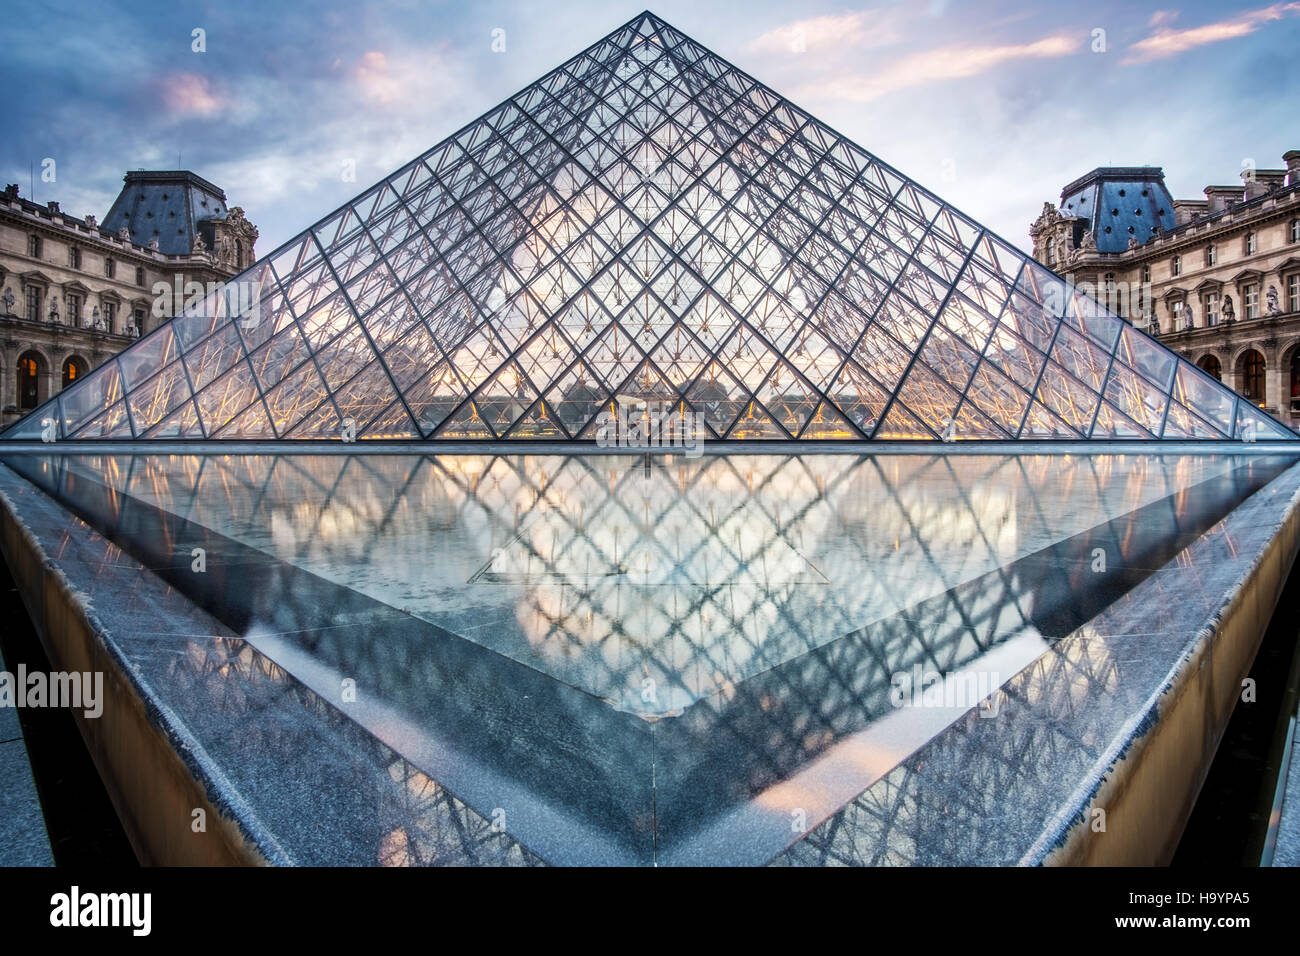 The glass pyramid entrance to the Louvre, designed by architect I.M.Pei. Evening shot in summer. - Stock Image